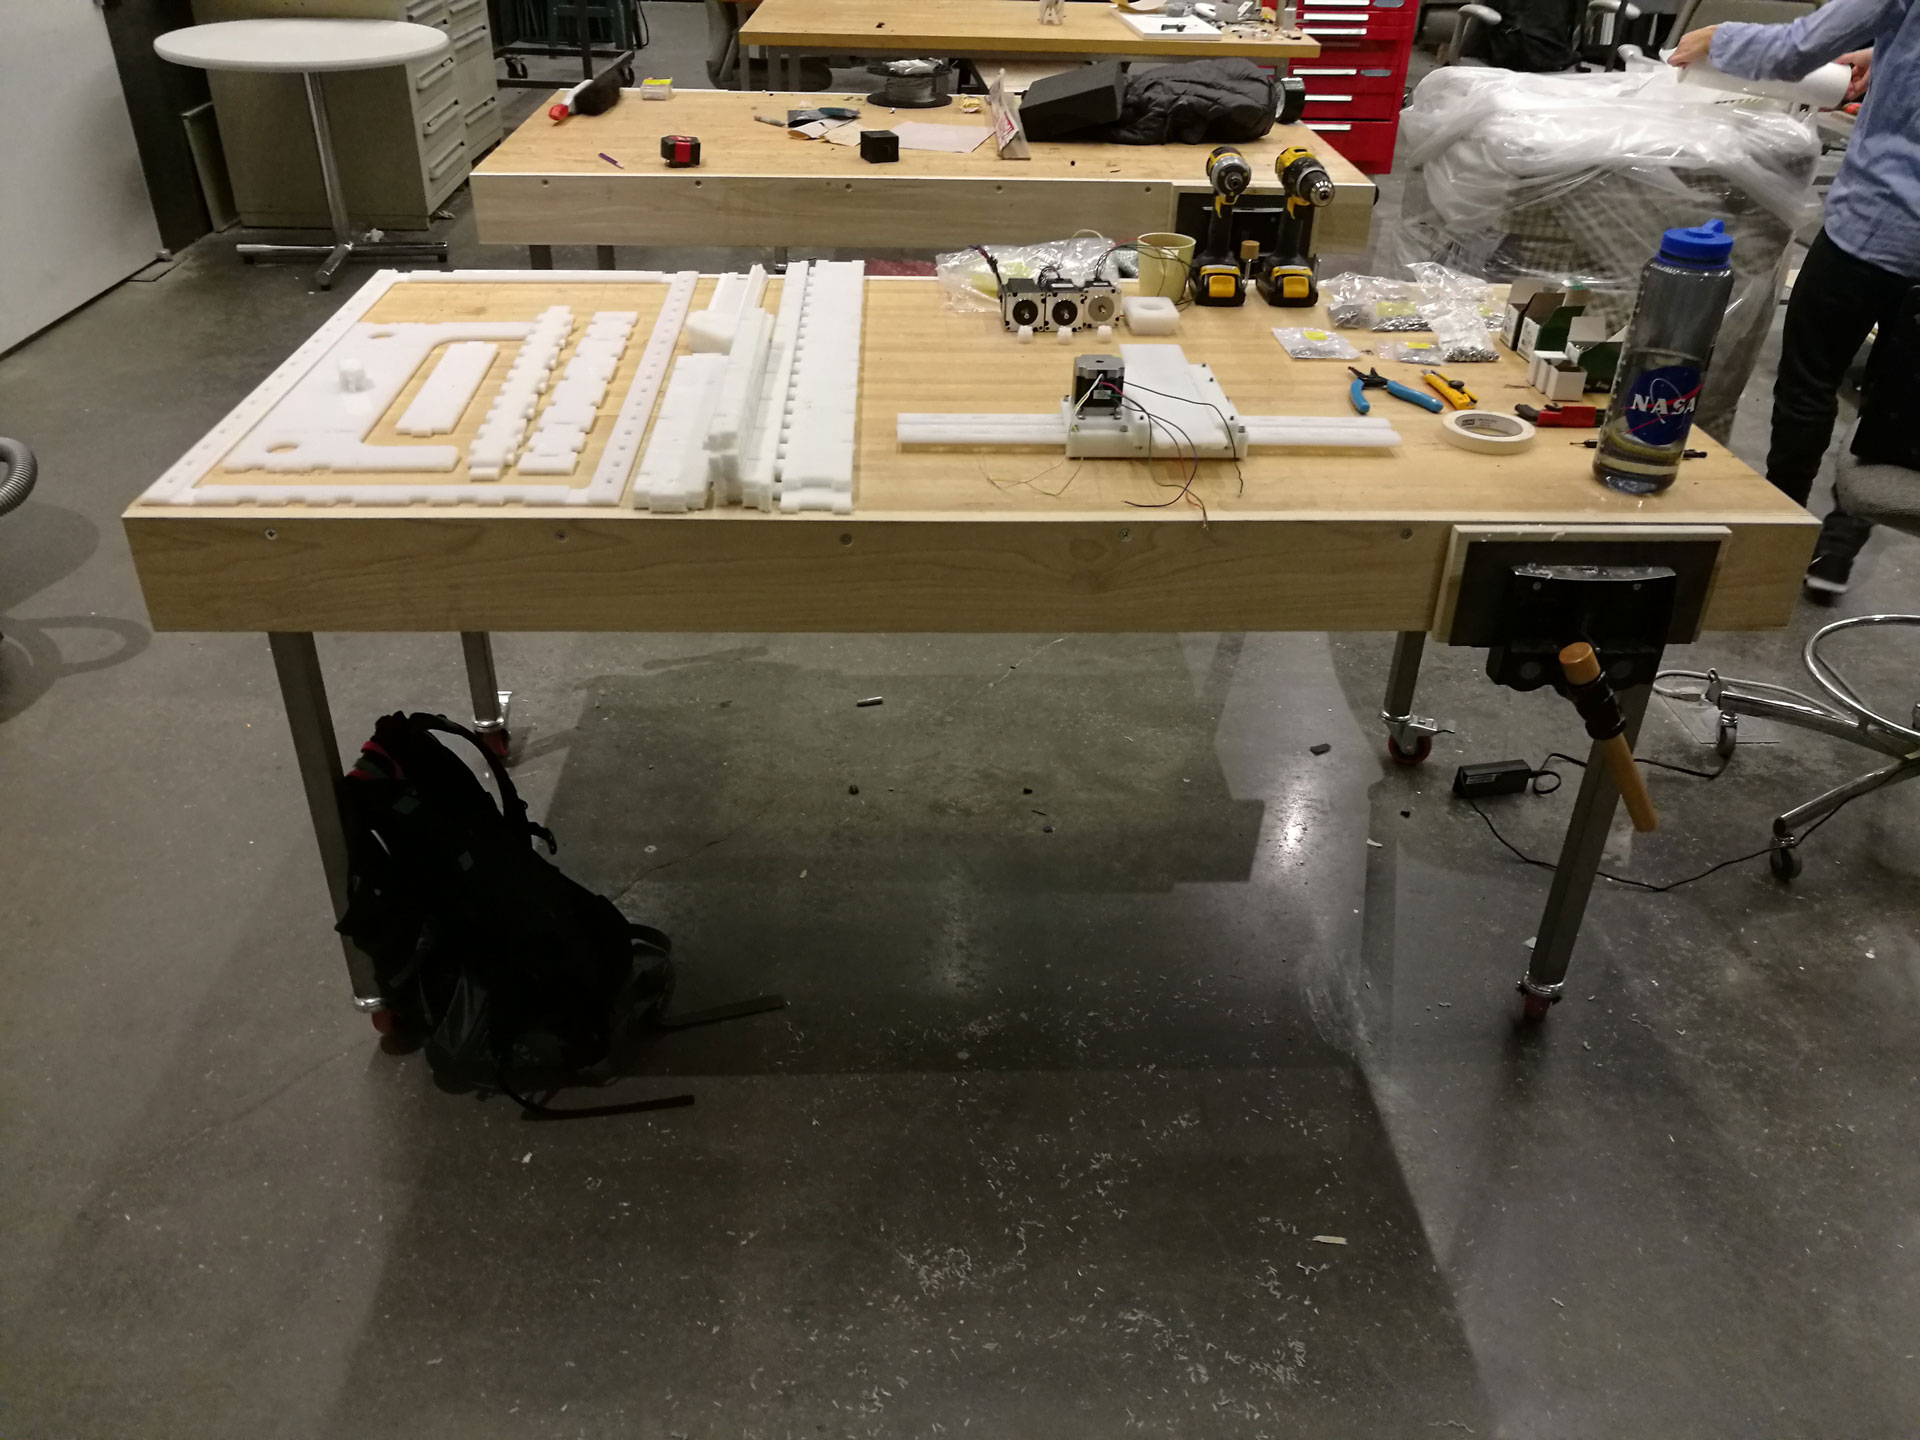 images/assembly-knoll.jpg